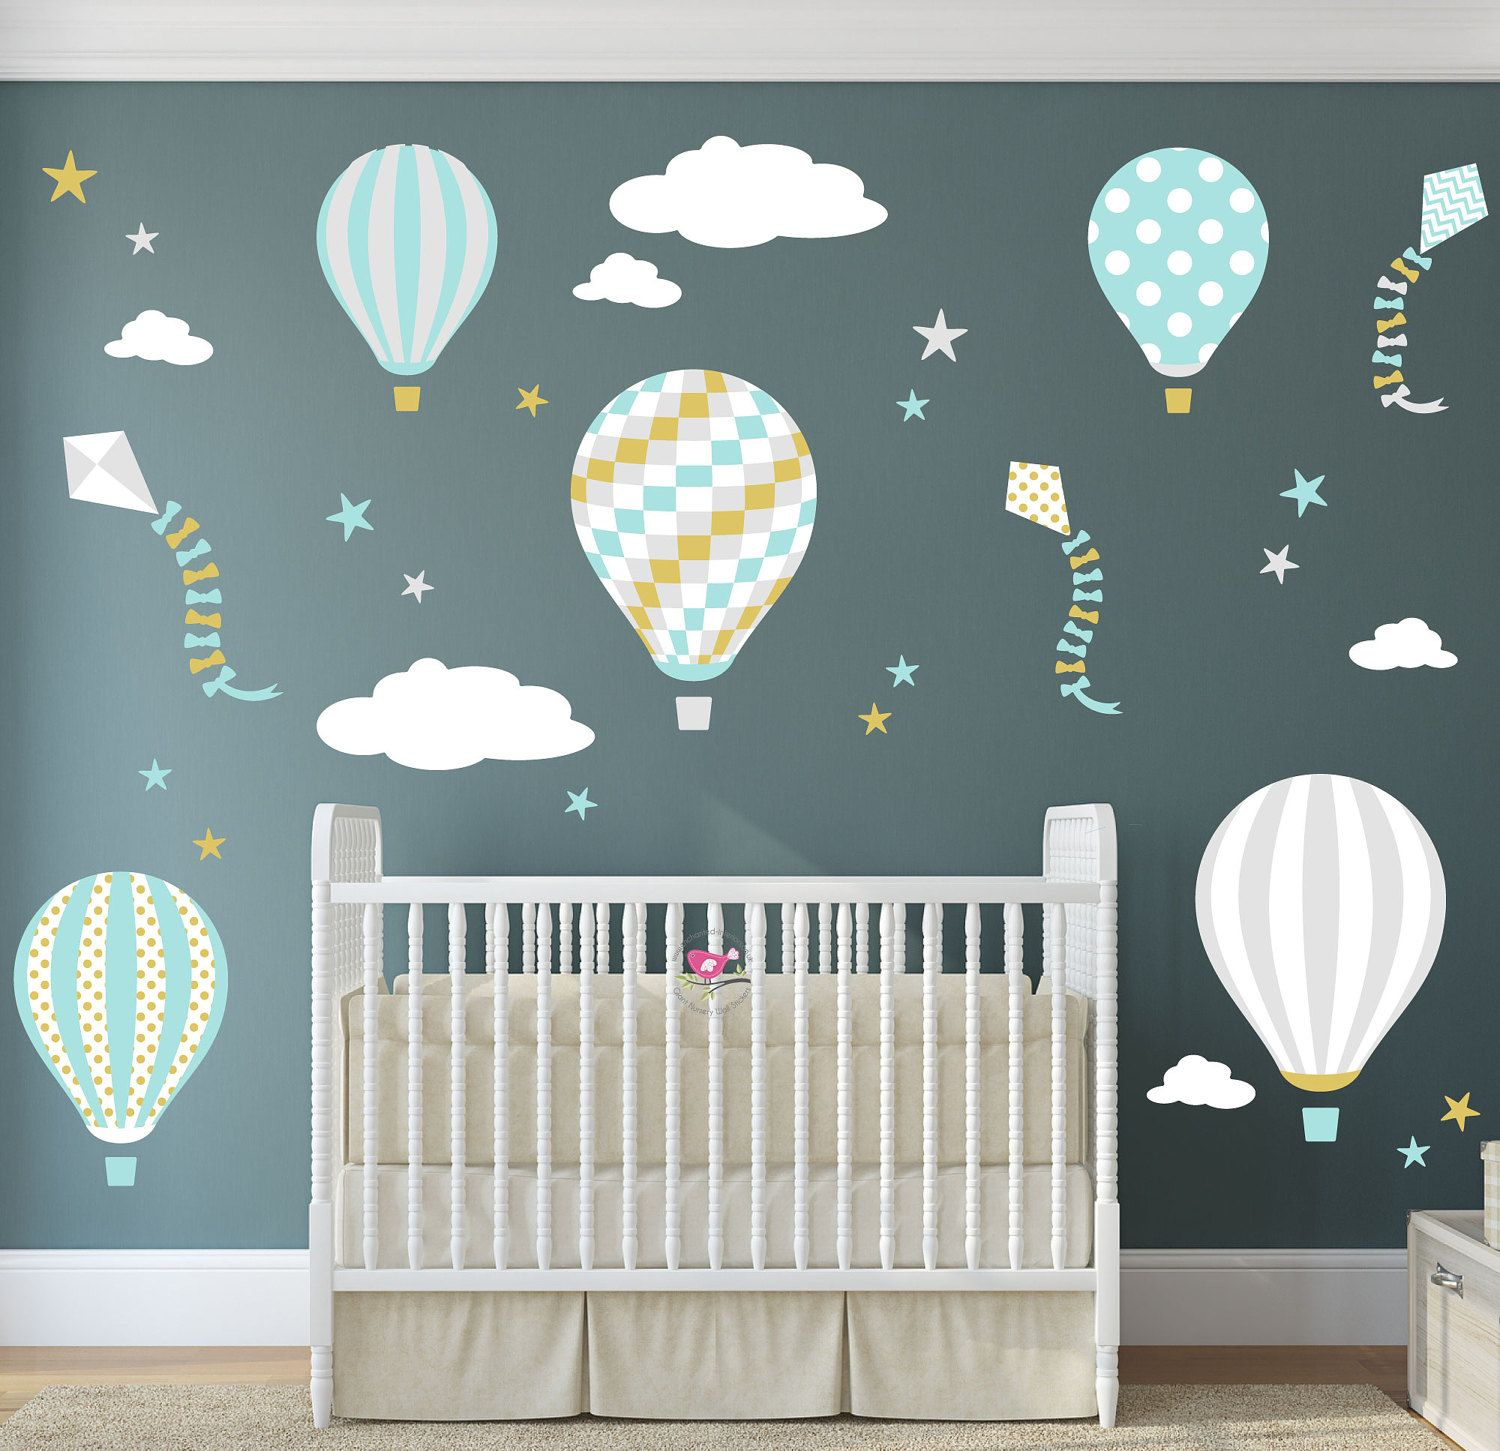 Enchanted Interiors Nursery Wall Art Decor Hot Air Balloon &